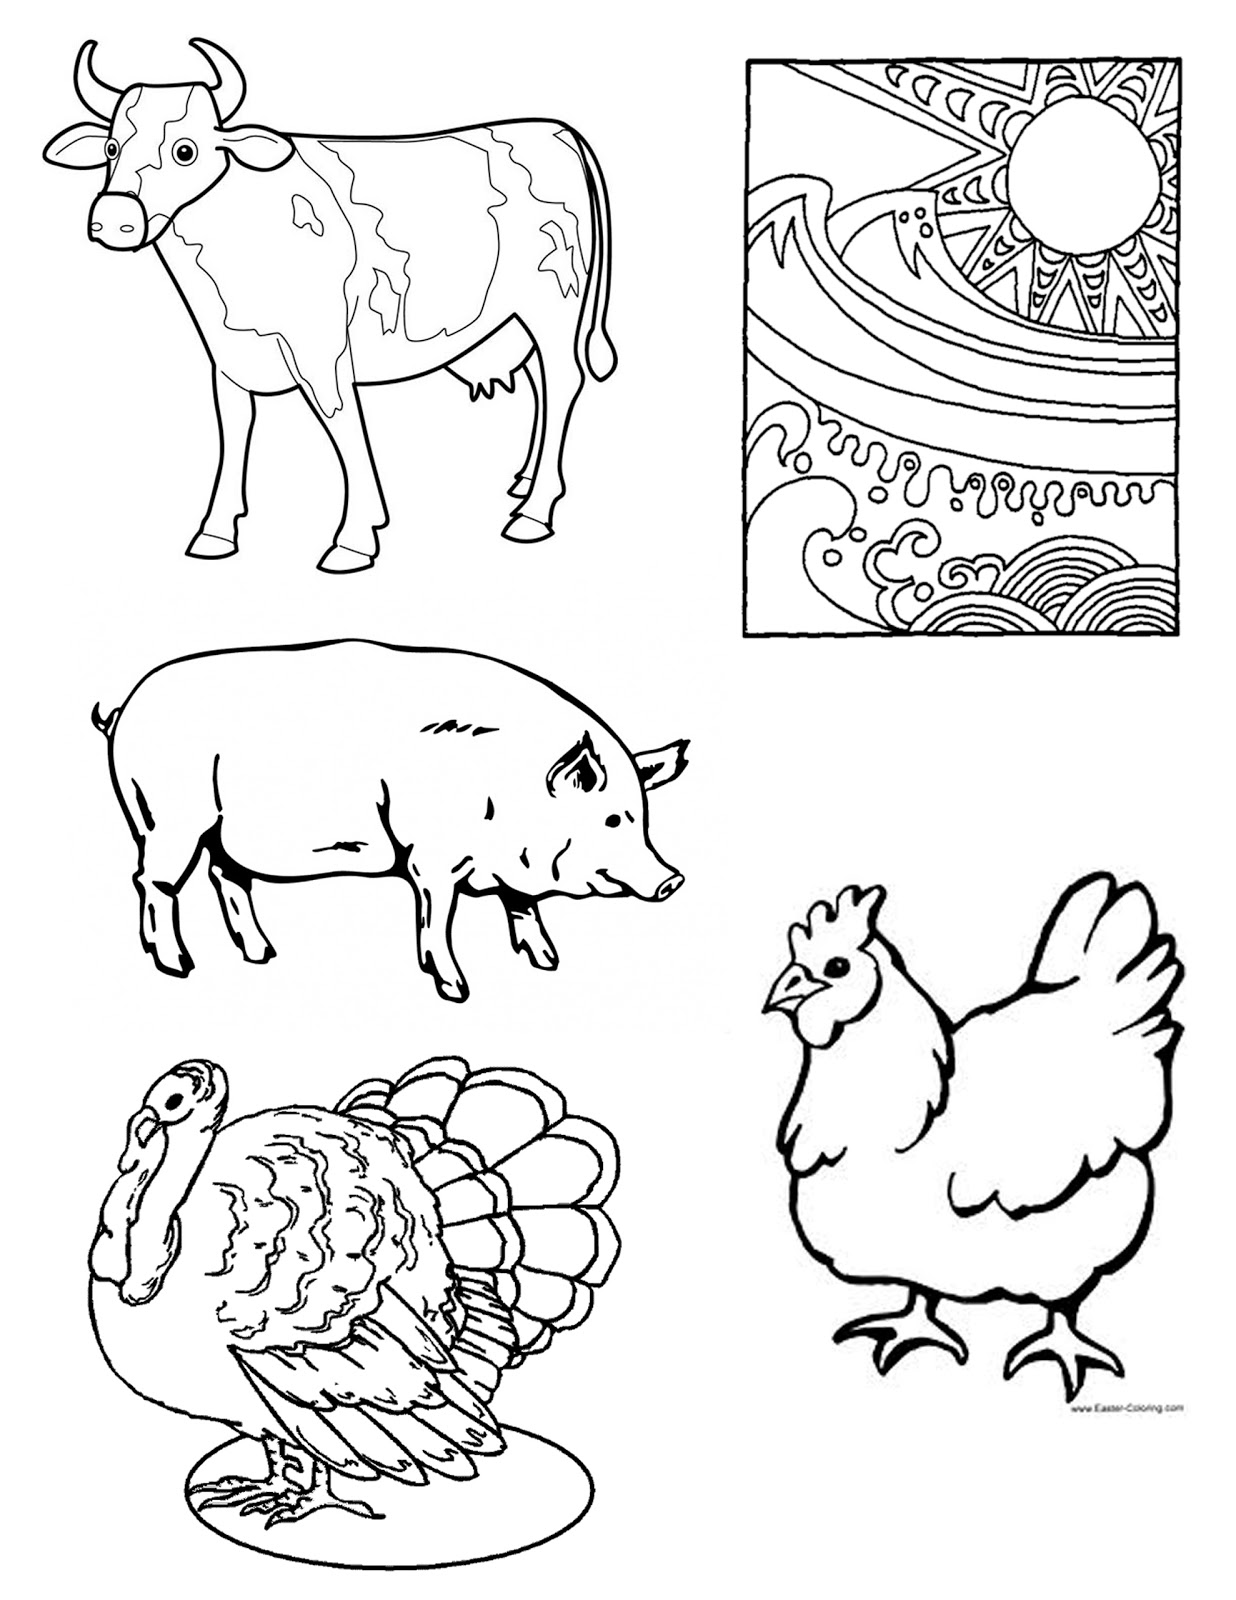 Meat And Fish Coloring Pages Coloring Coloring Pages